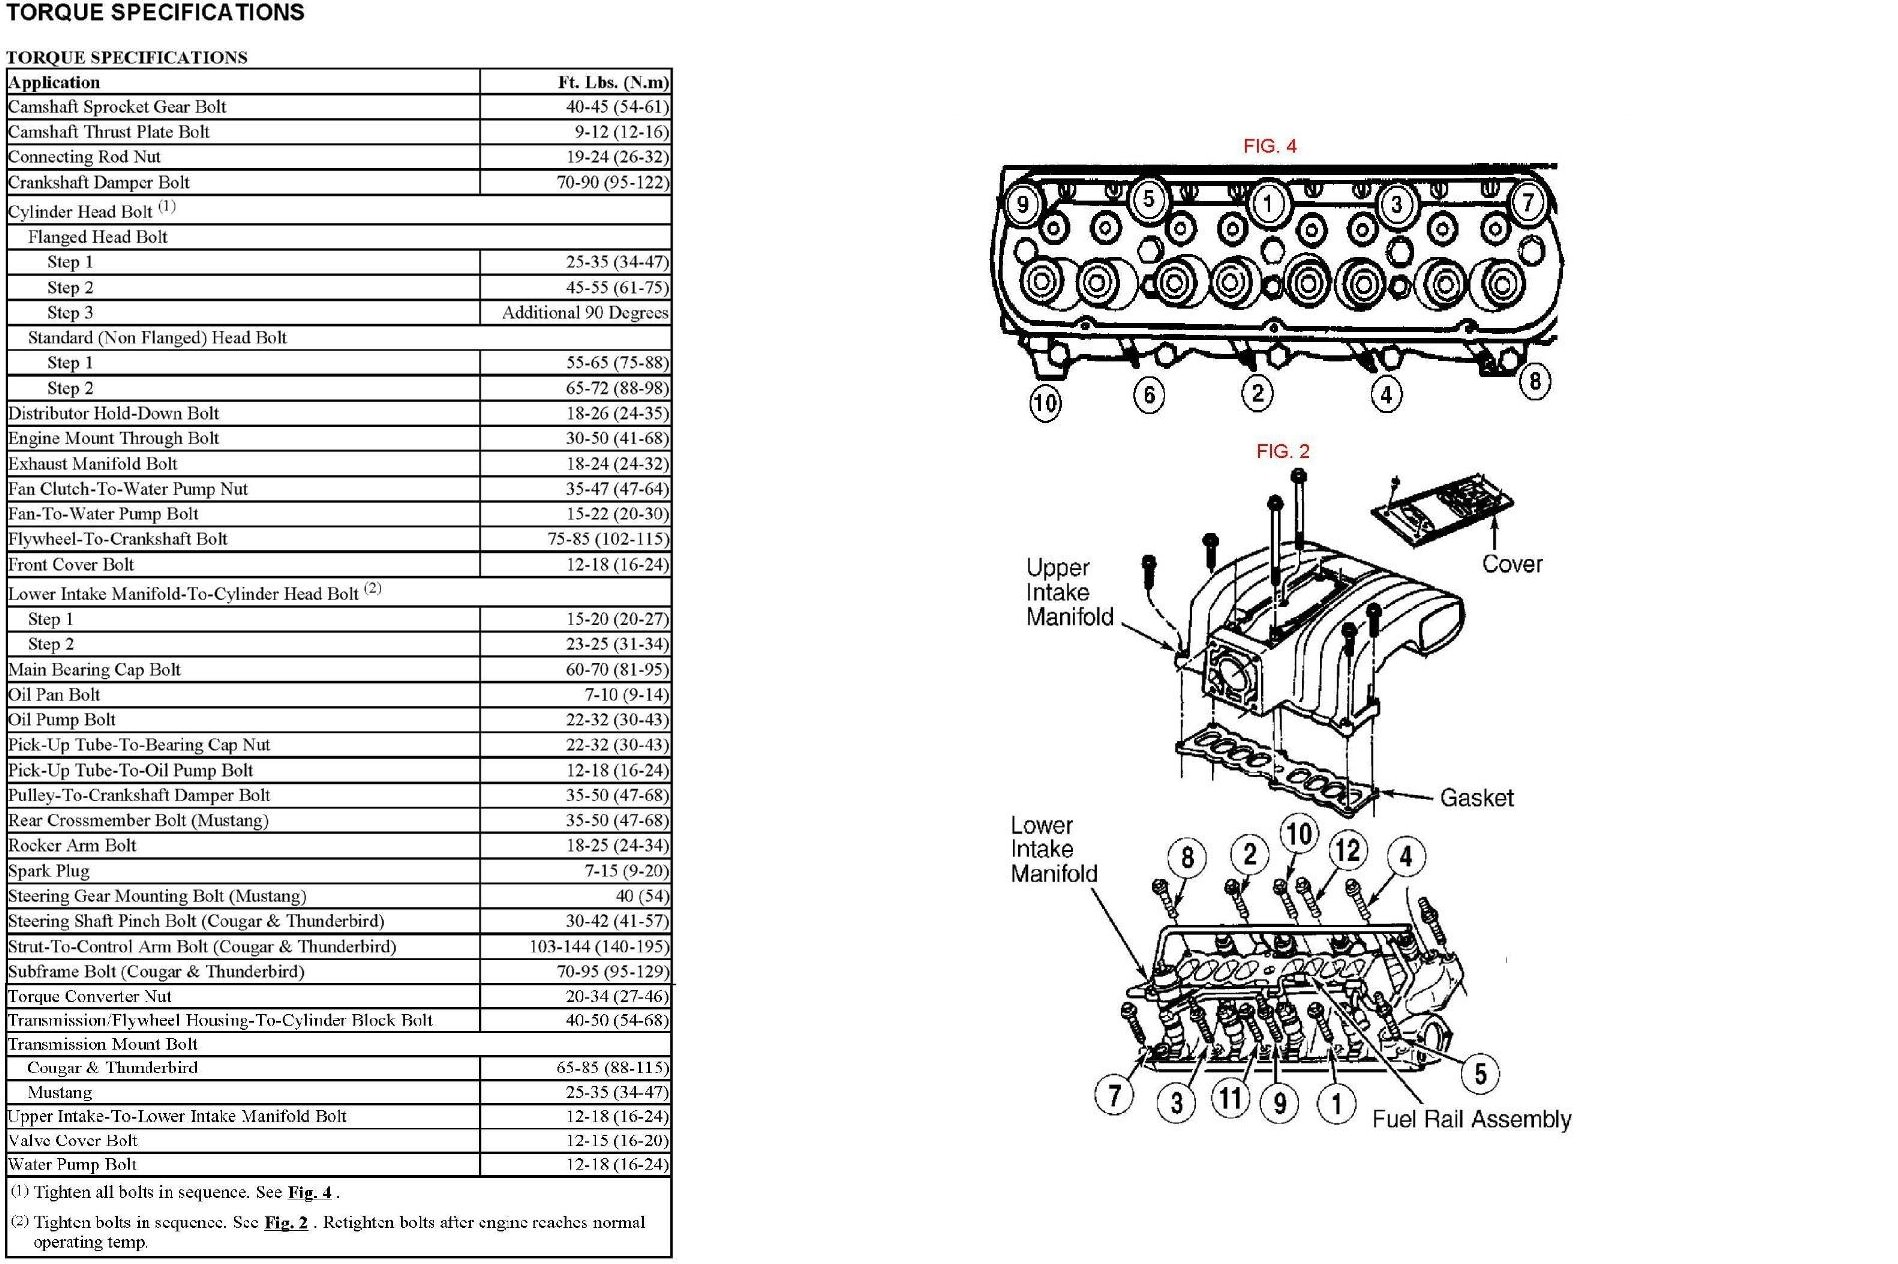 V6 Vortec Engine Diagram Spark Plug